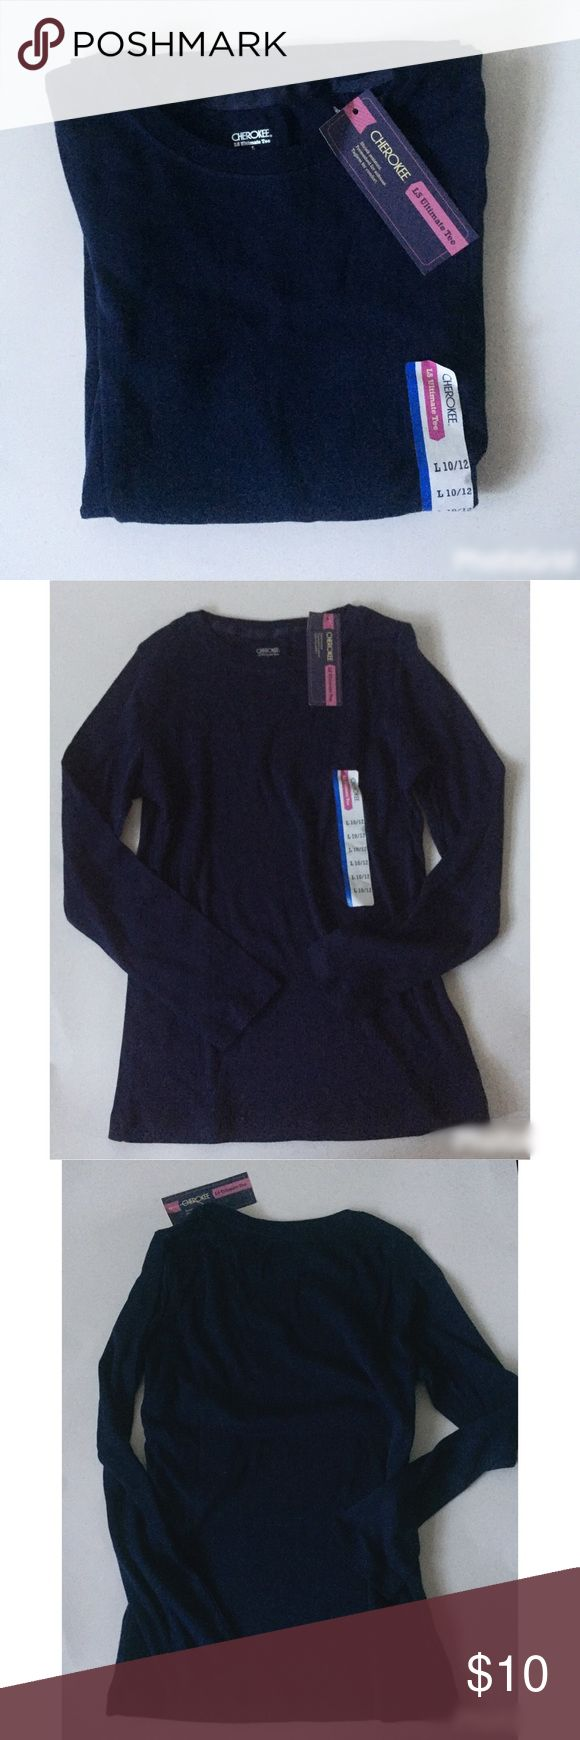 """NWT. Long sleeve navy tee NWT. Long sleeve navy tee. Size: L or 10/12 in girls. About 22"""" long with a sleeve length of 20.5"""". Sorry, no trades. Like the item but not the price, feel free to make me a reasonable offer using the offer button. Cherokee Shirts & Tops Tees - Long Sleeve"""